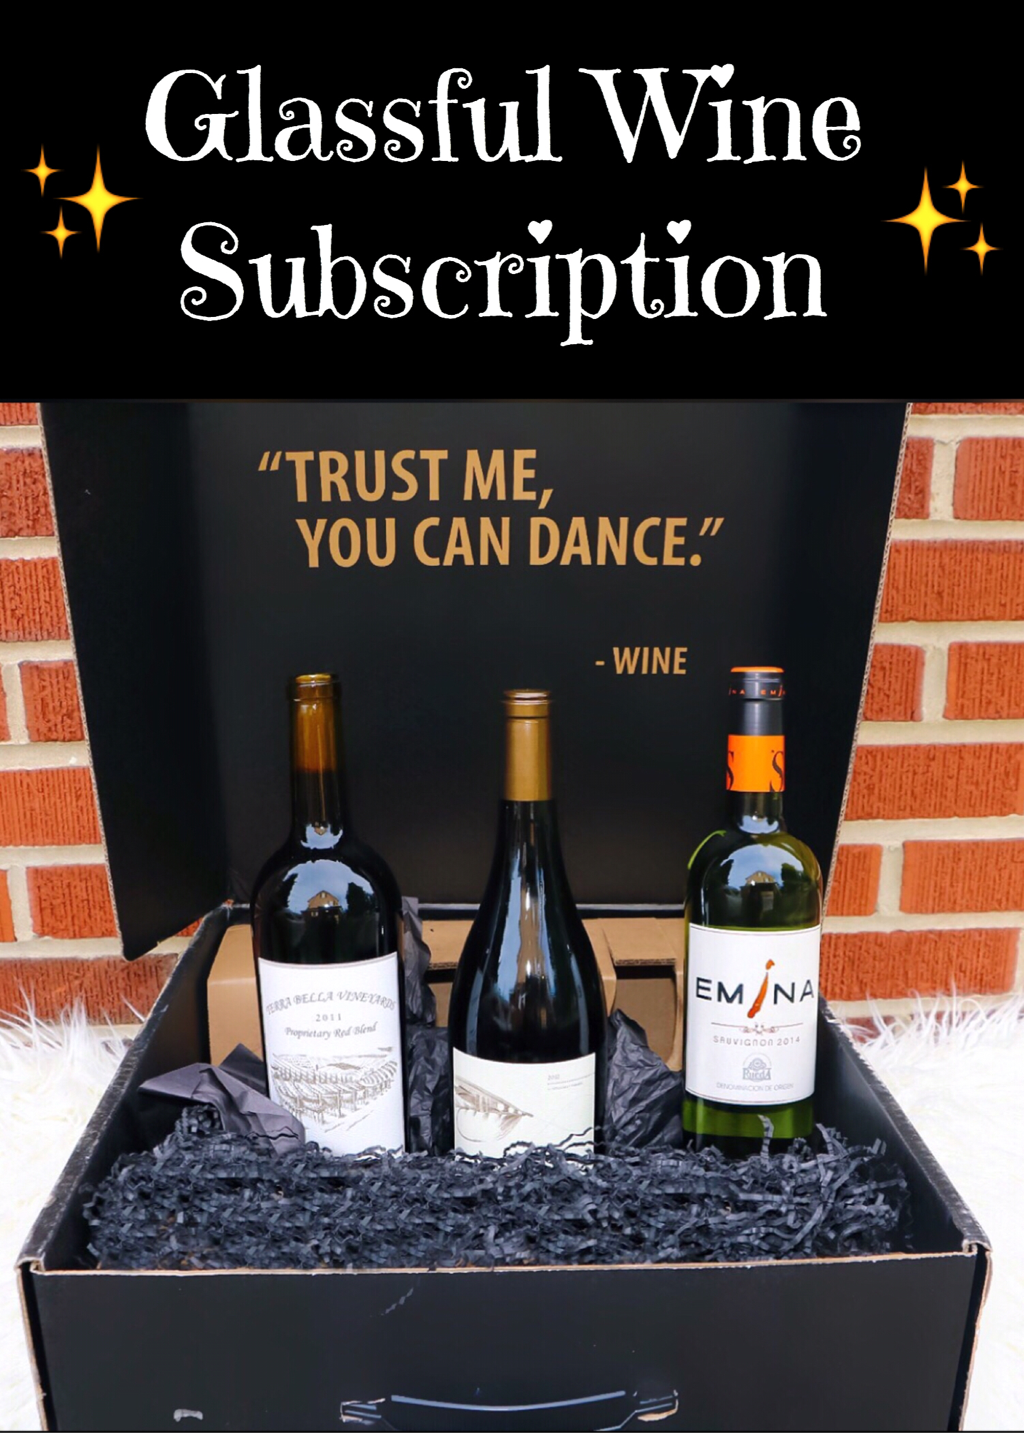 GLASSFUL WINE SUBSCRIPTION